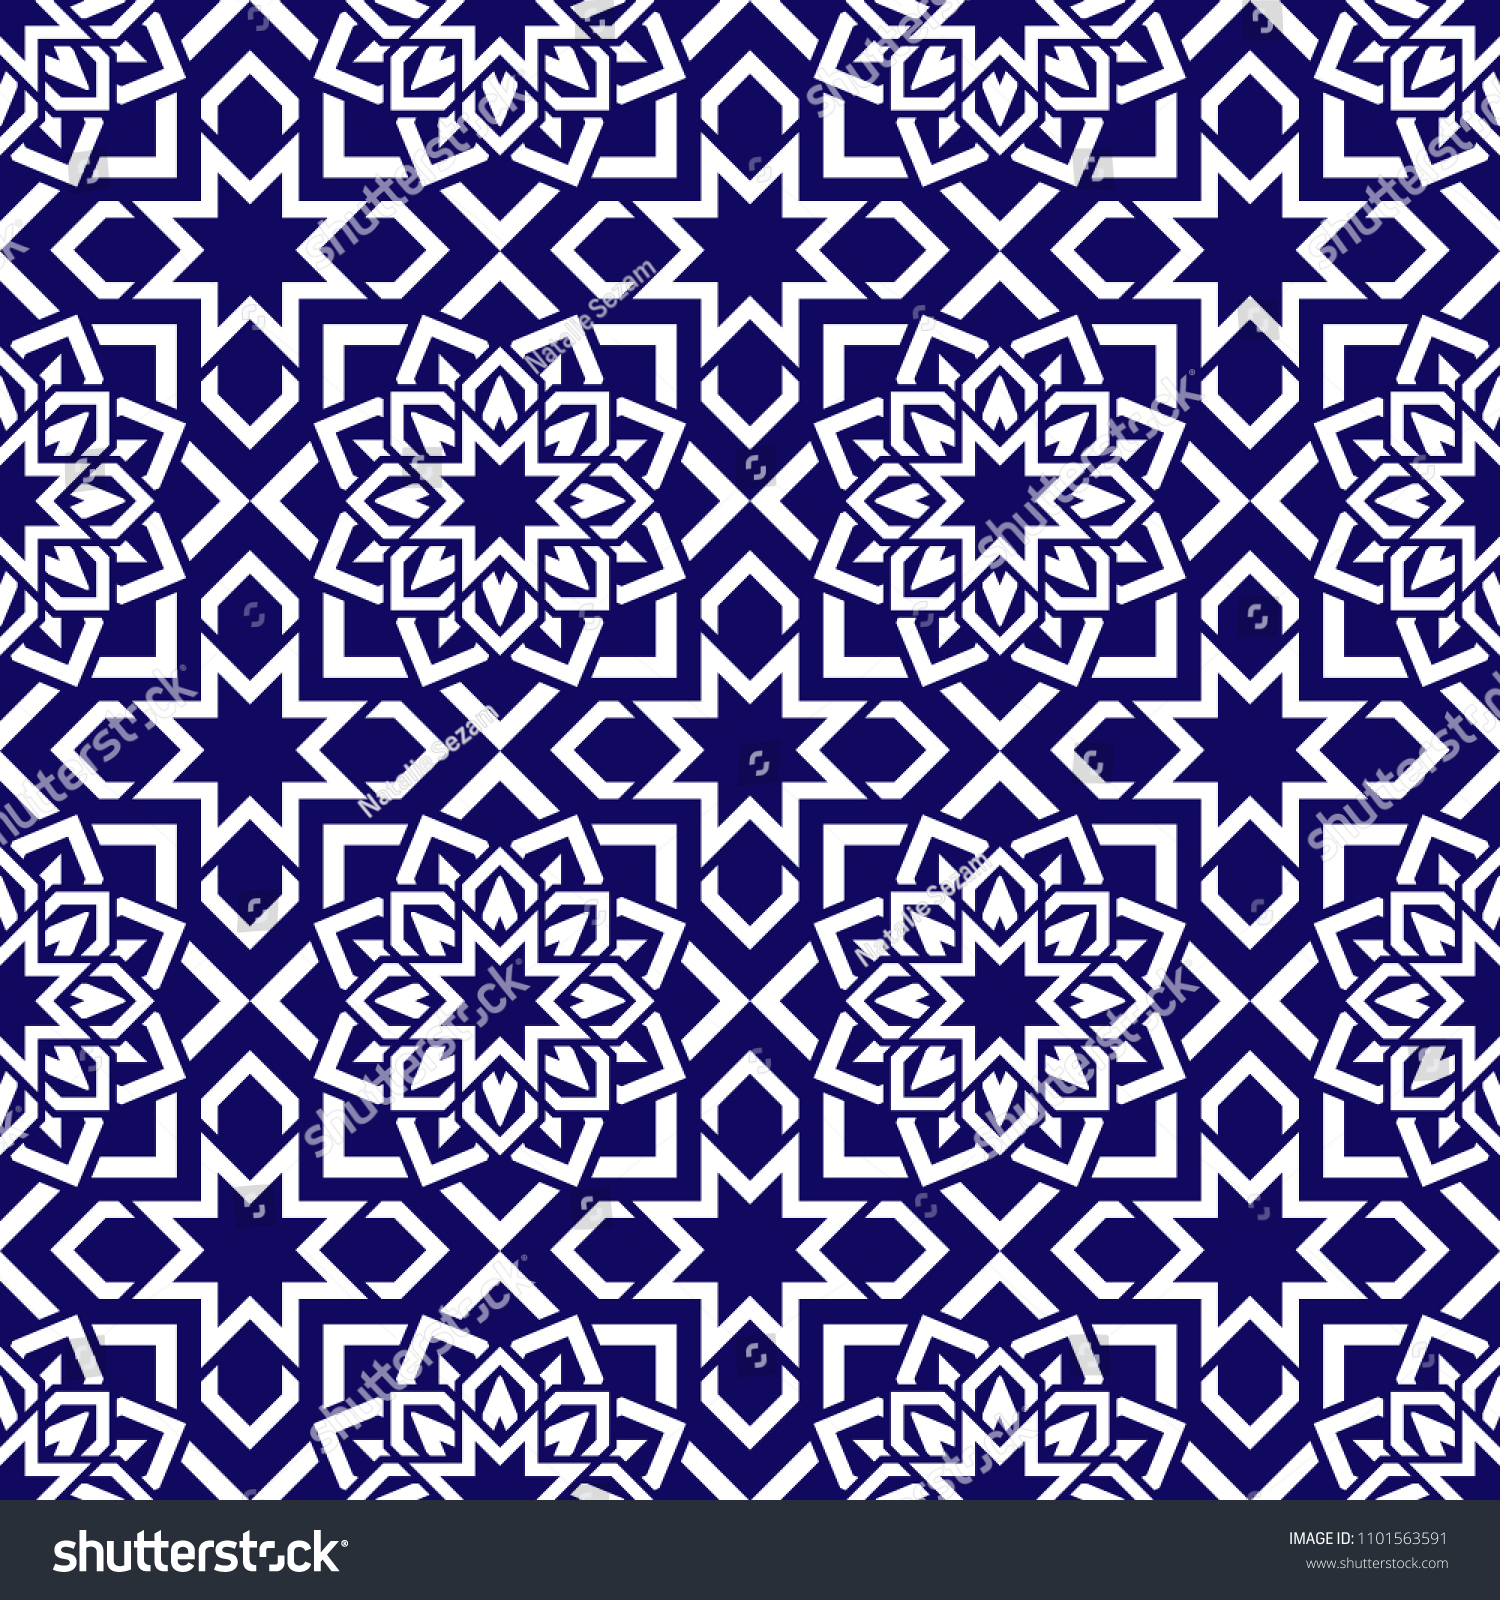 Asian Geometric Background Dark And White Islamic Backdrop Arabic Template